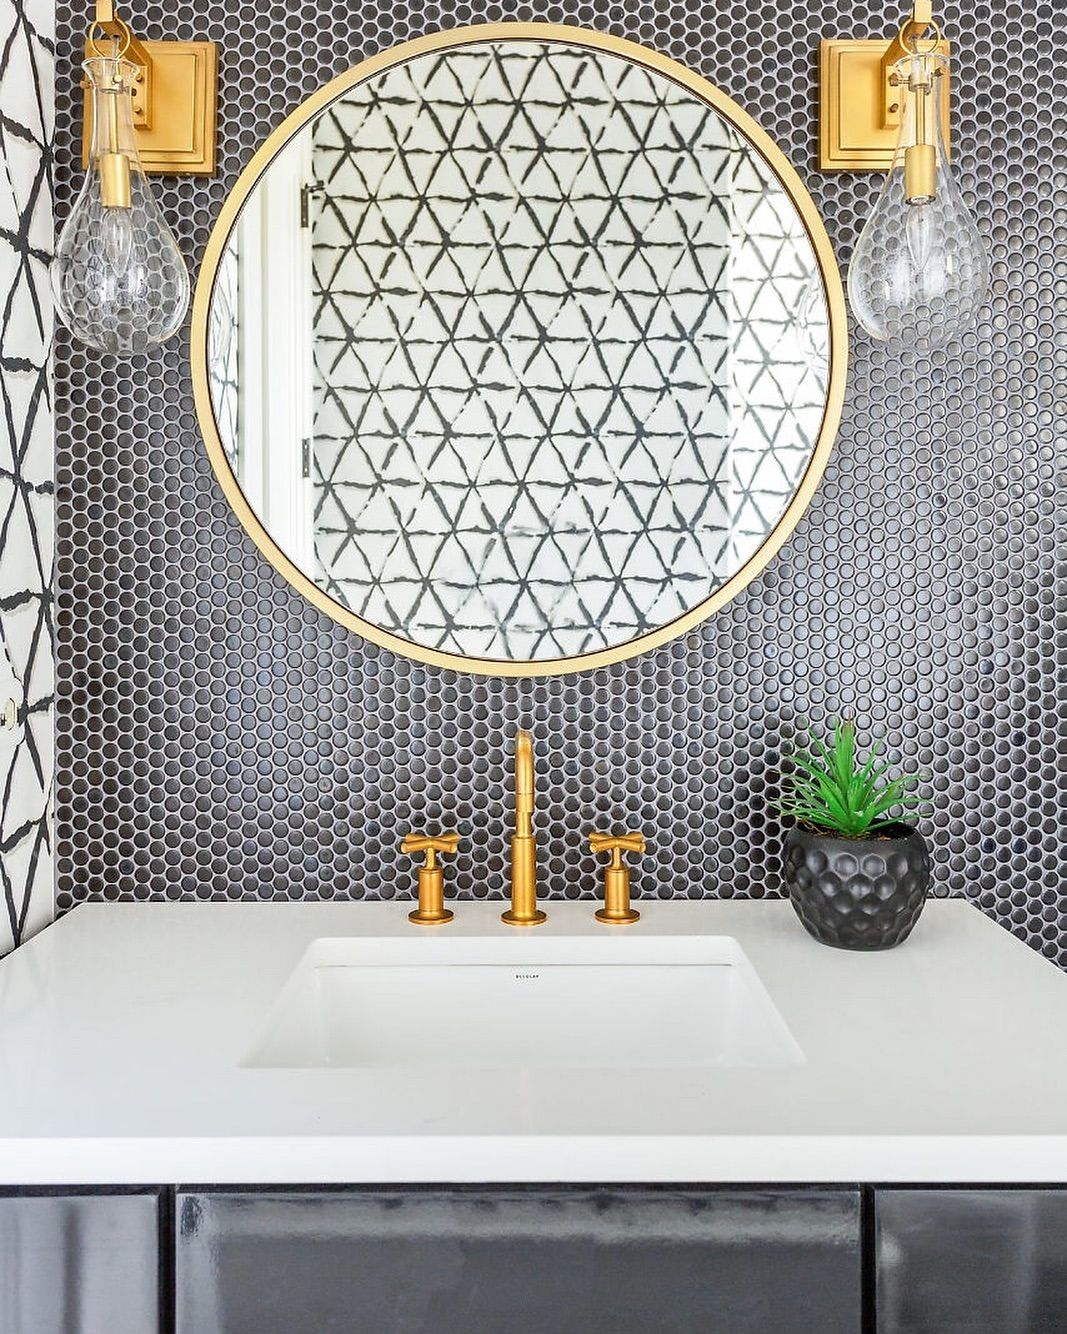 Mirror Mirror On The Wall Isn T This The Hottest Powder Bath Design Of All I Mean Really Look At The Black Penny Ti Round Mirror Bathroom Mirror Penny Tile